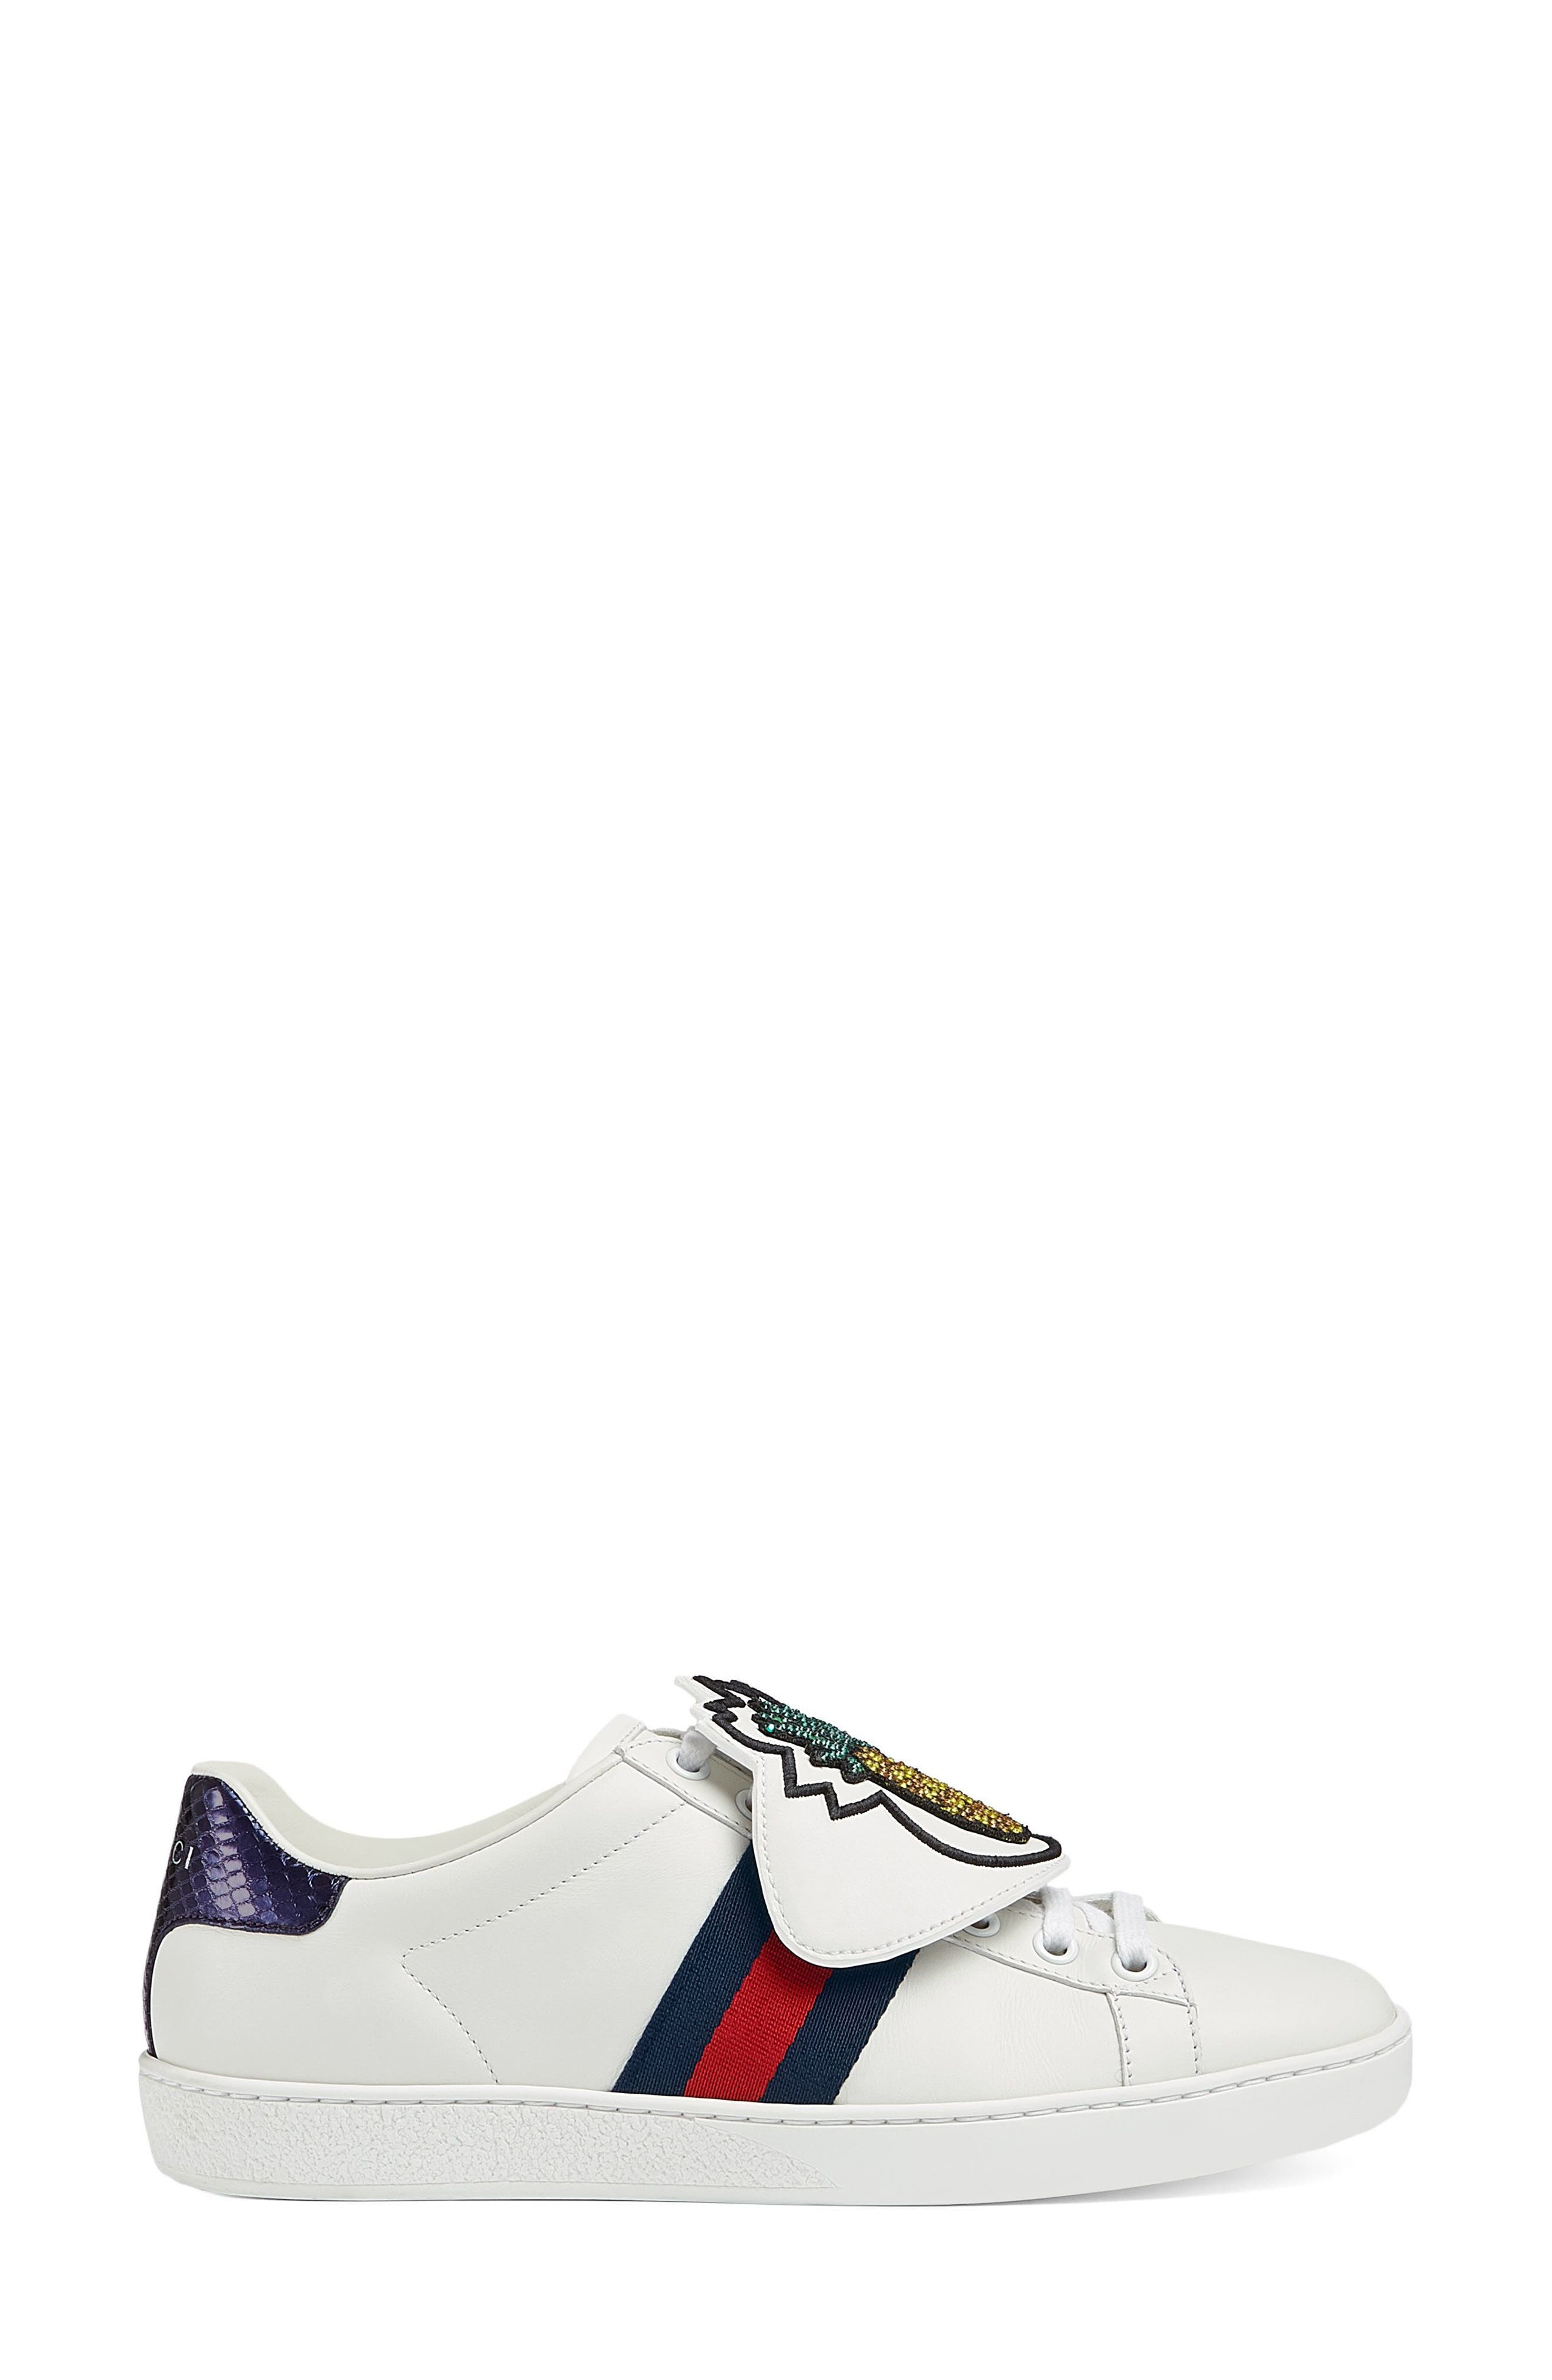 gucci shoes black and white. gucci new ace pineapple embroidered patch low top sneaker (women) shoes black and white